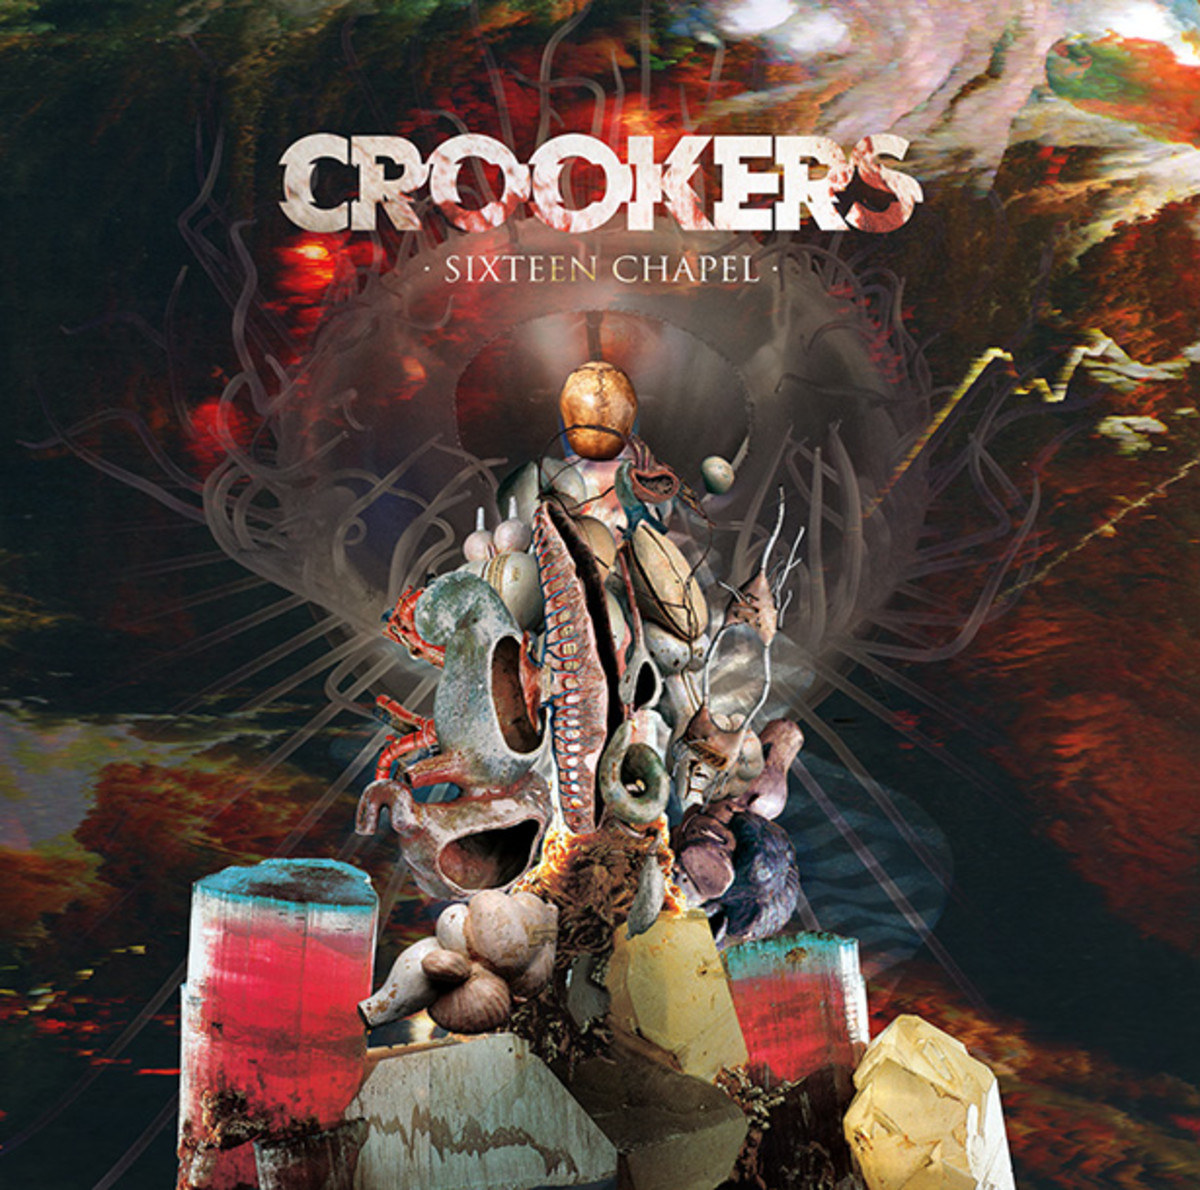 Cookers Drops More Singles Ahead of 'Sixteen Chapel' Album/Tour